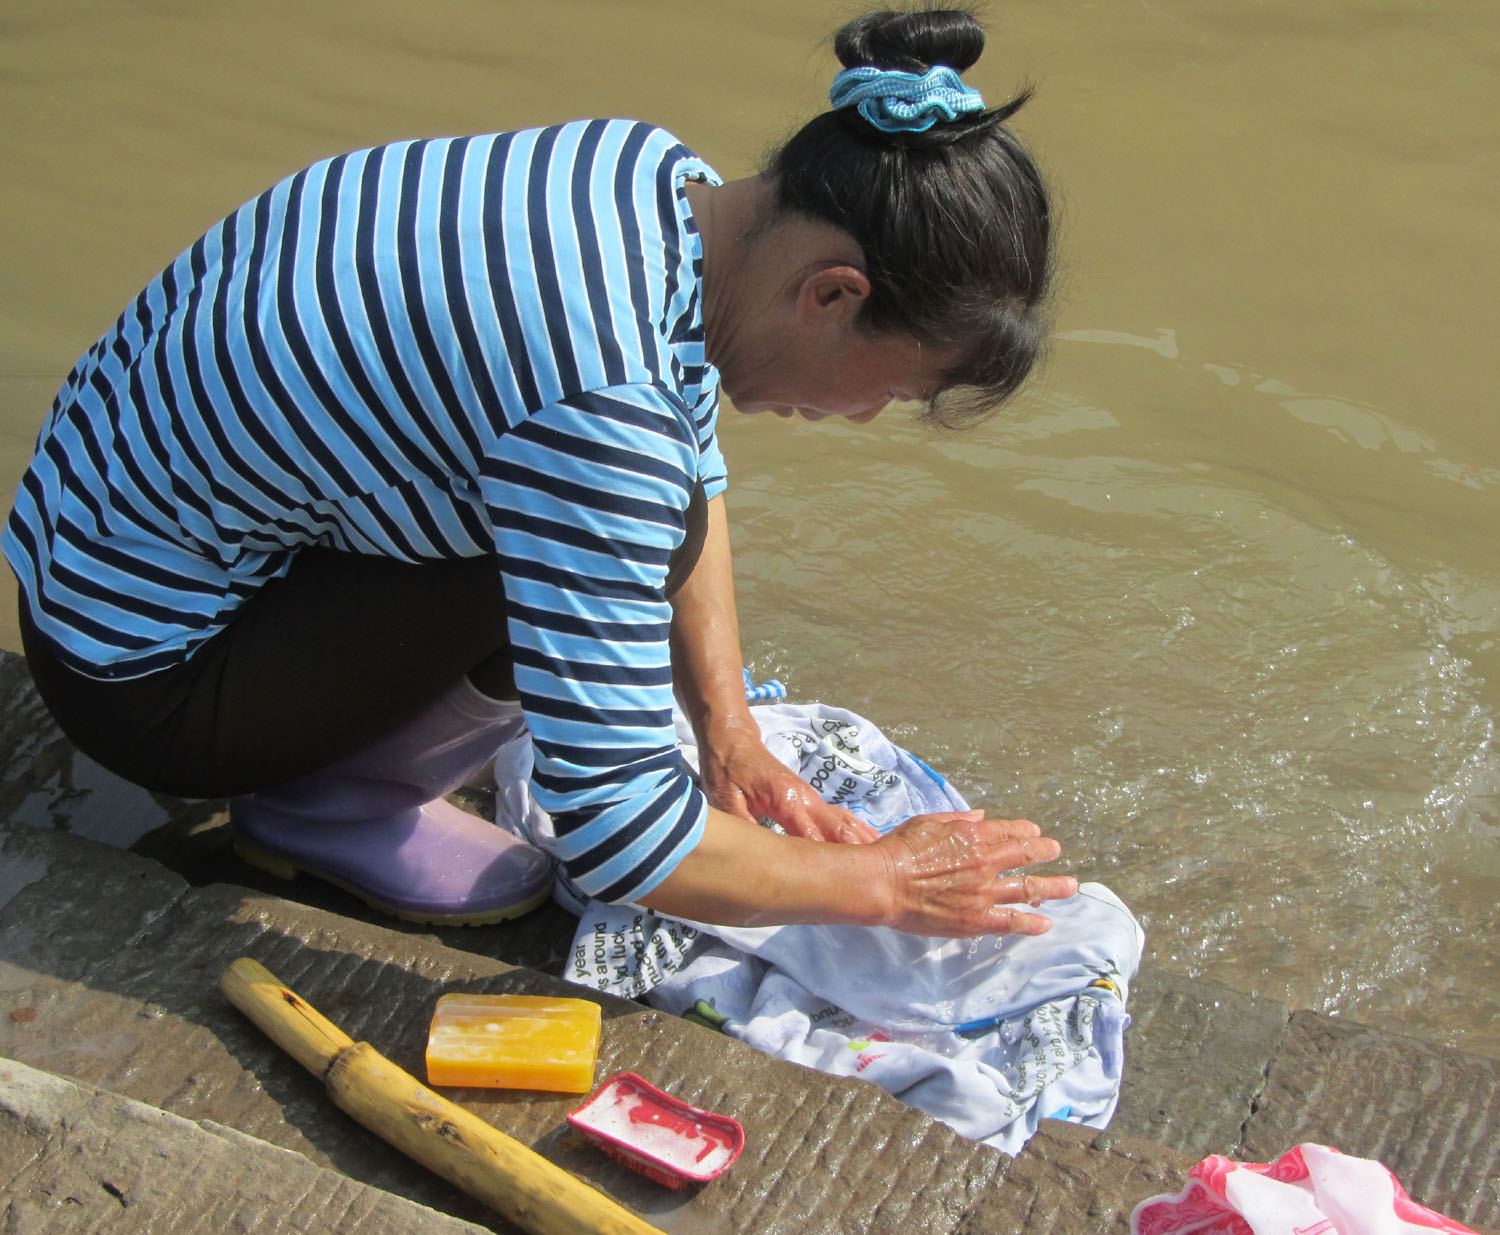 China-Yangtze-River-Land-Excursion-Washing-Clothes